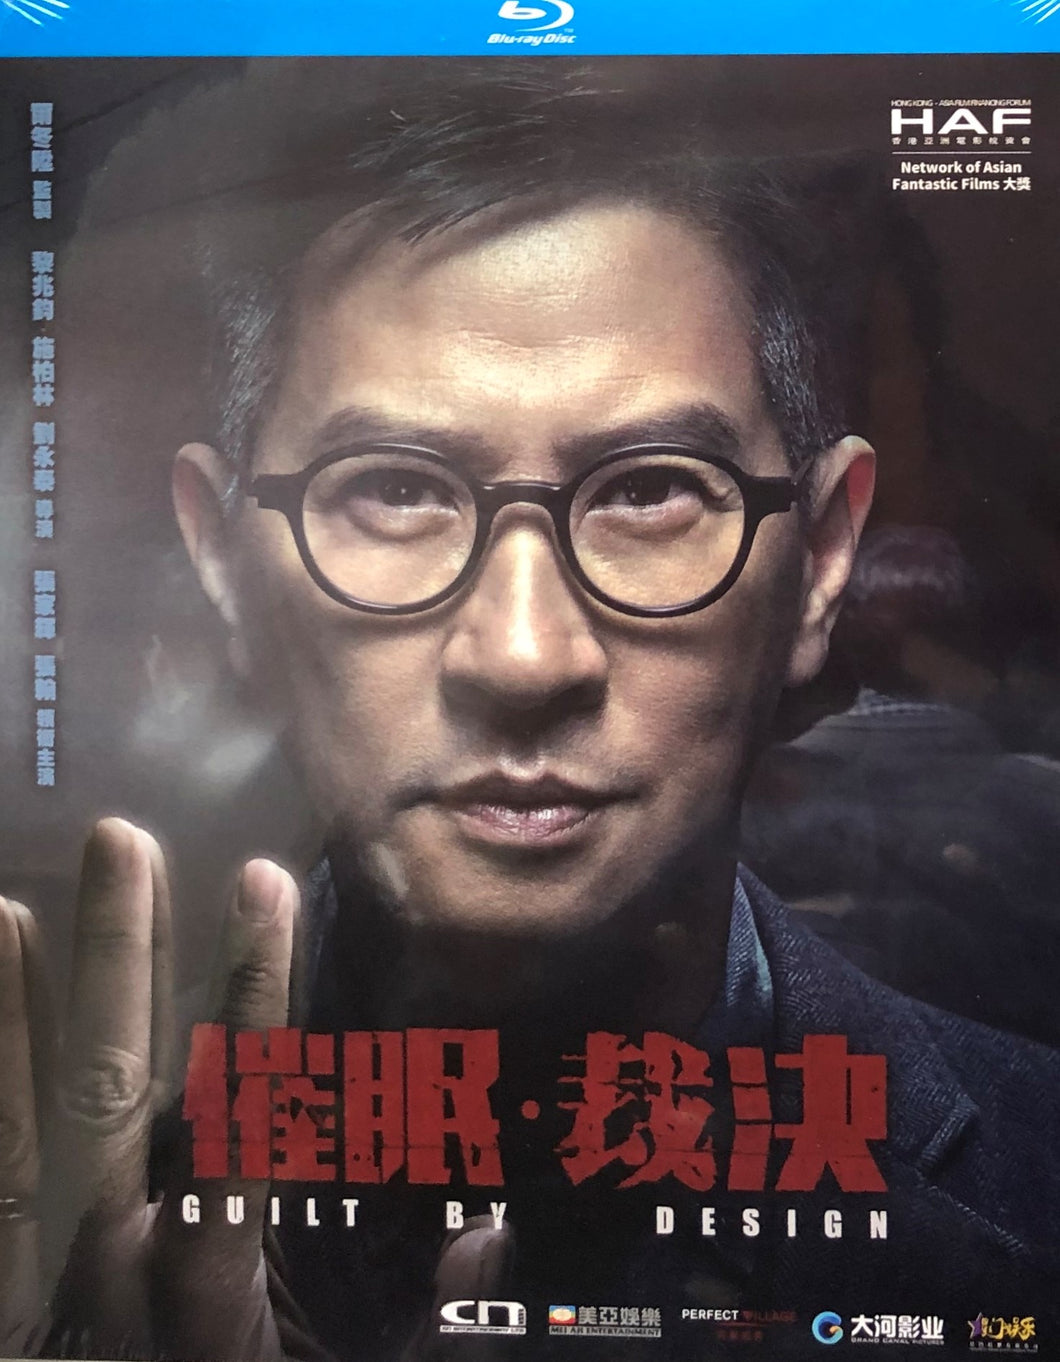 Guilt By Design 2019 (Hong Kong Movie) BLU-RAY with English Subtitles (Region Free) 催眠裁決